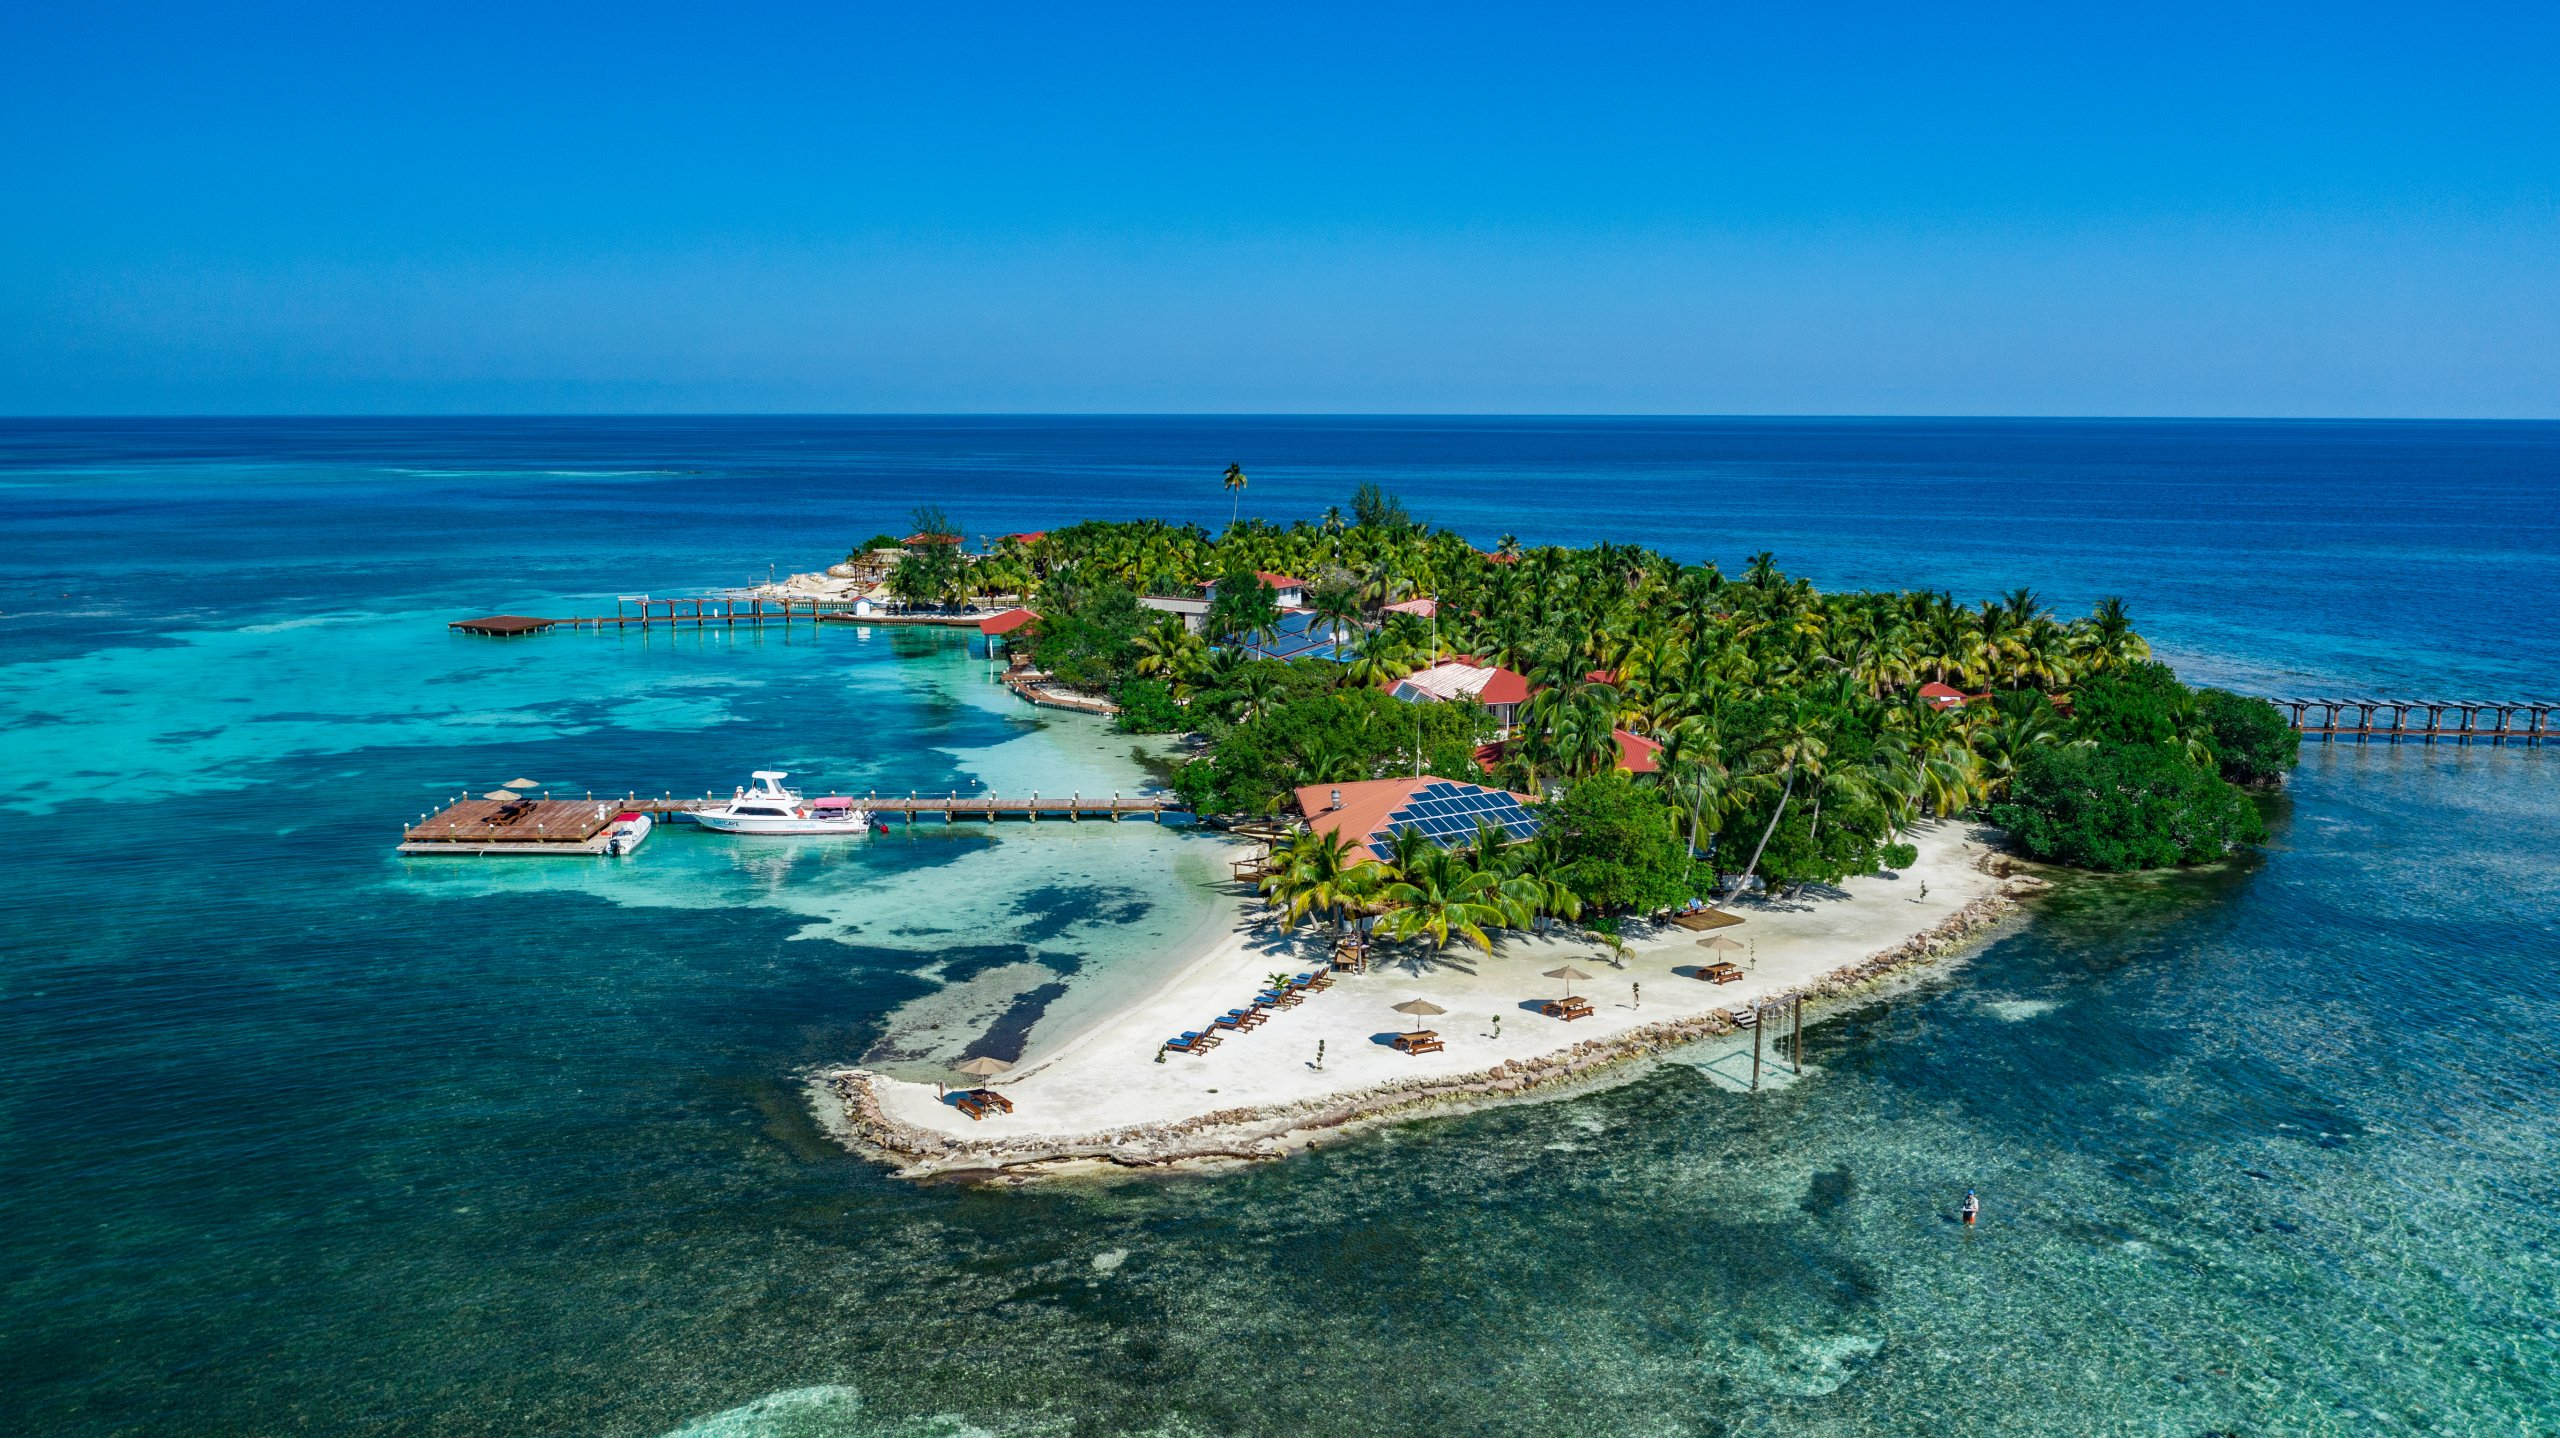 Private Island Rental In Belize: Your Friends Will Thank You!